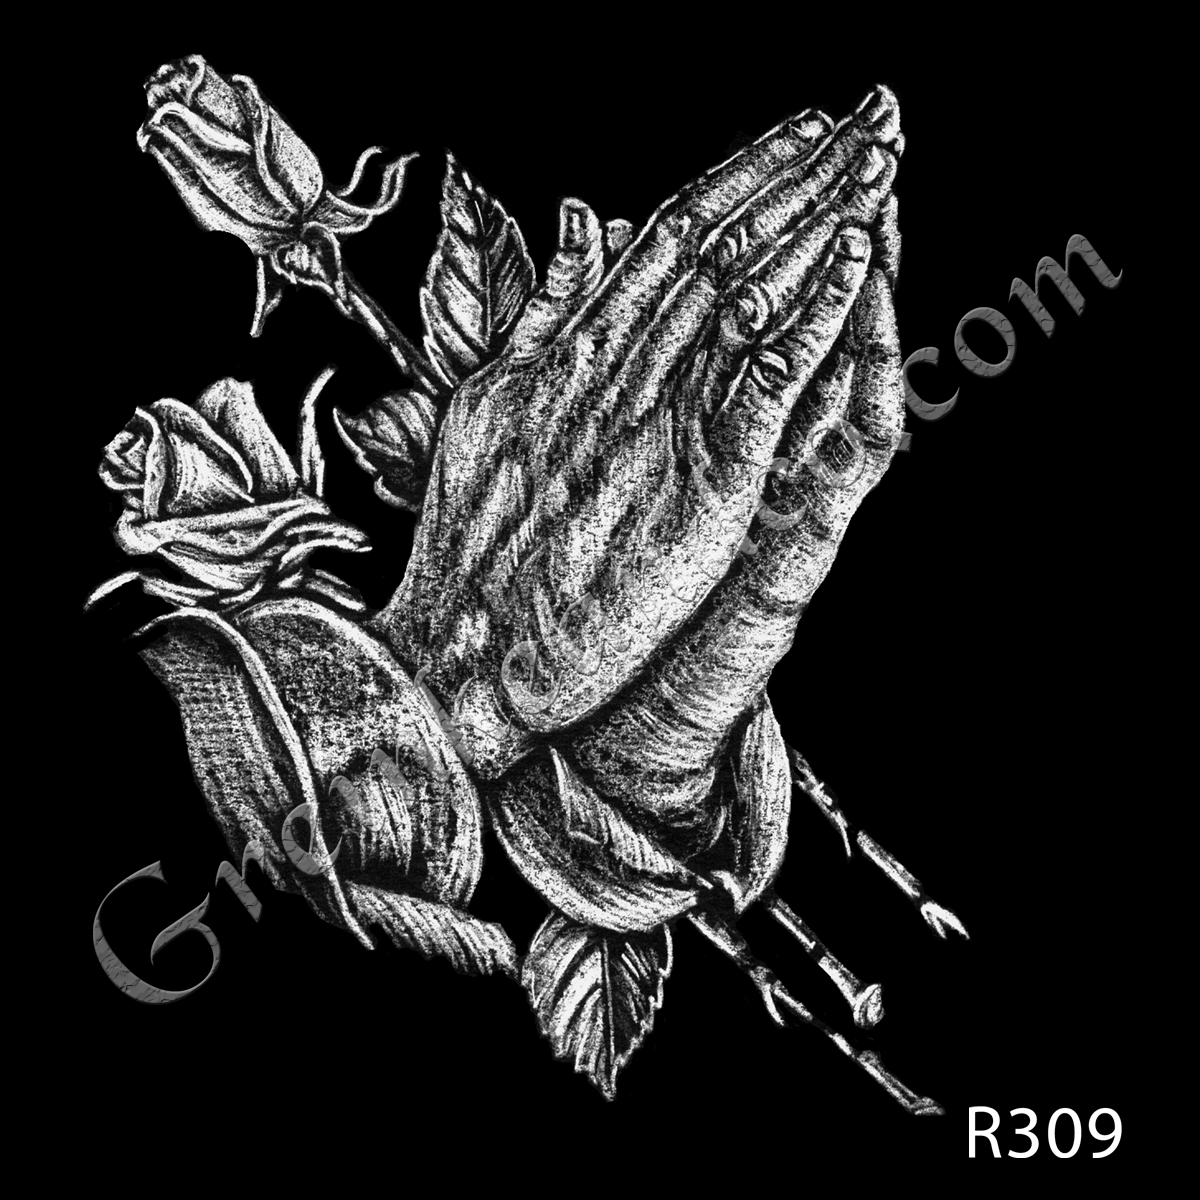 R309 - Praying Hands with Roses